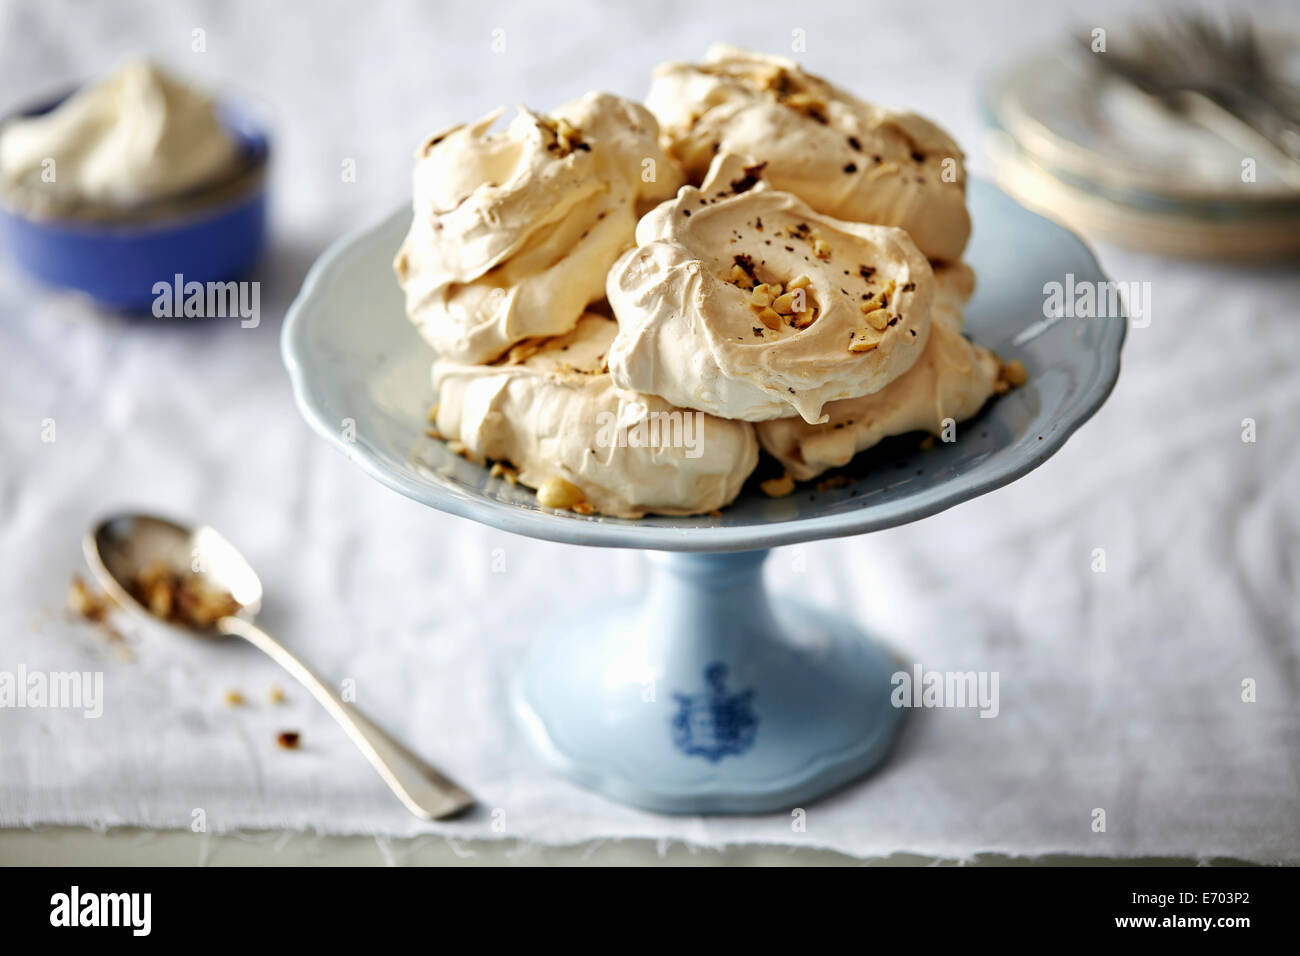 La meringue noisette sur plateau aride Photo Stock